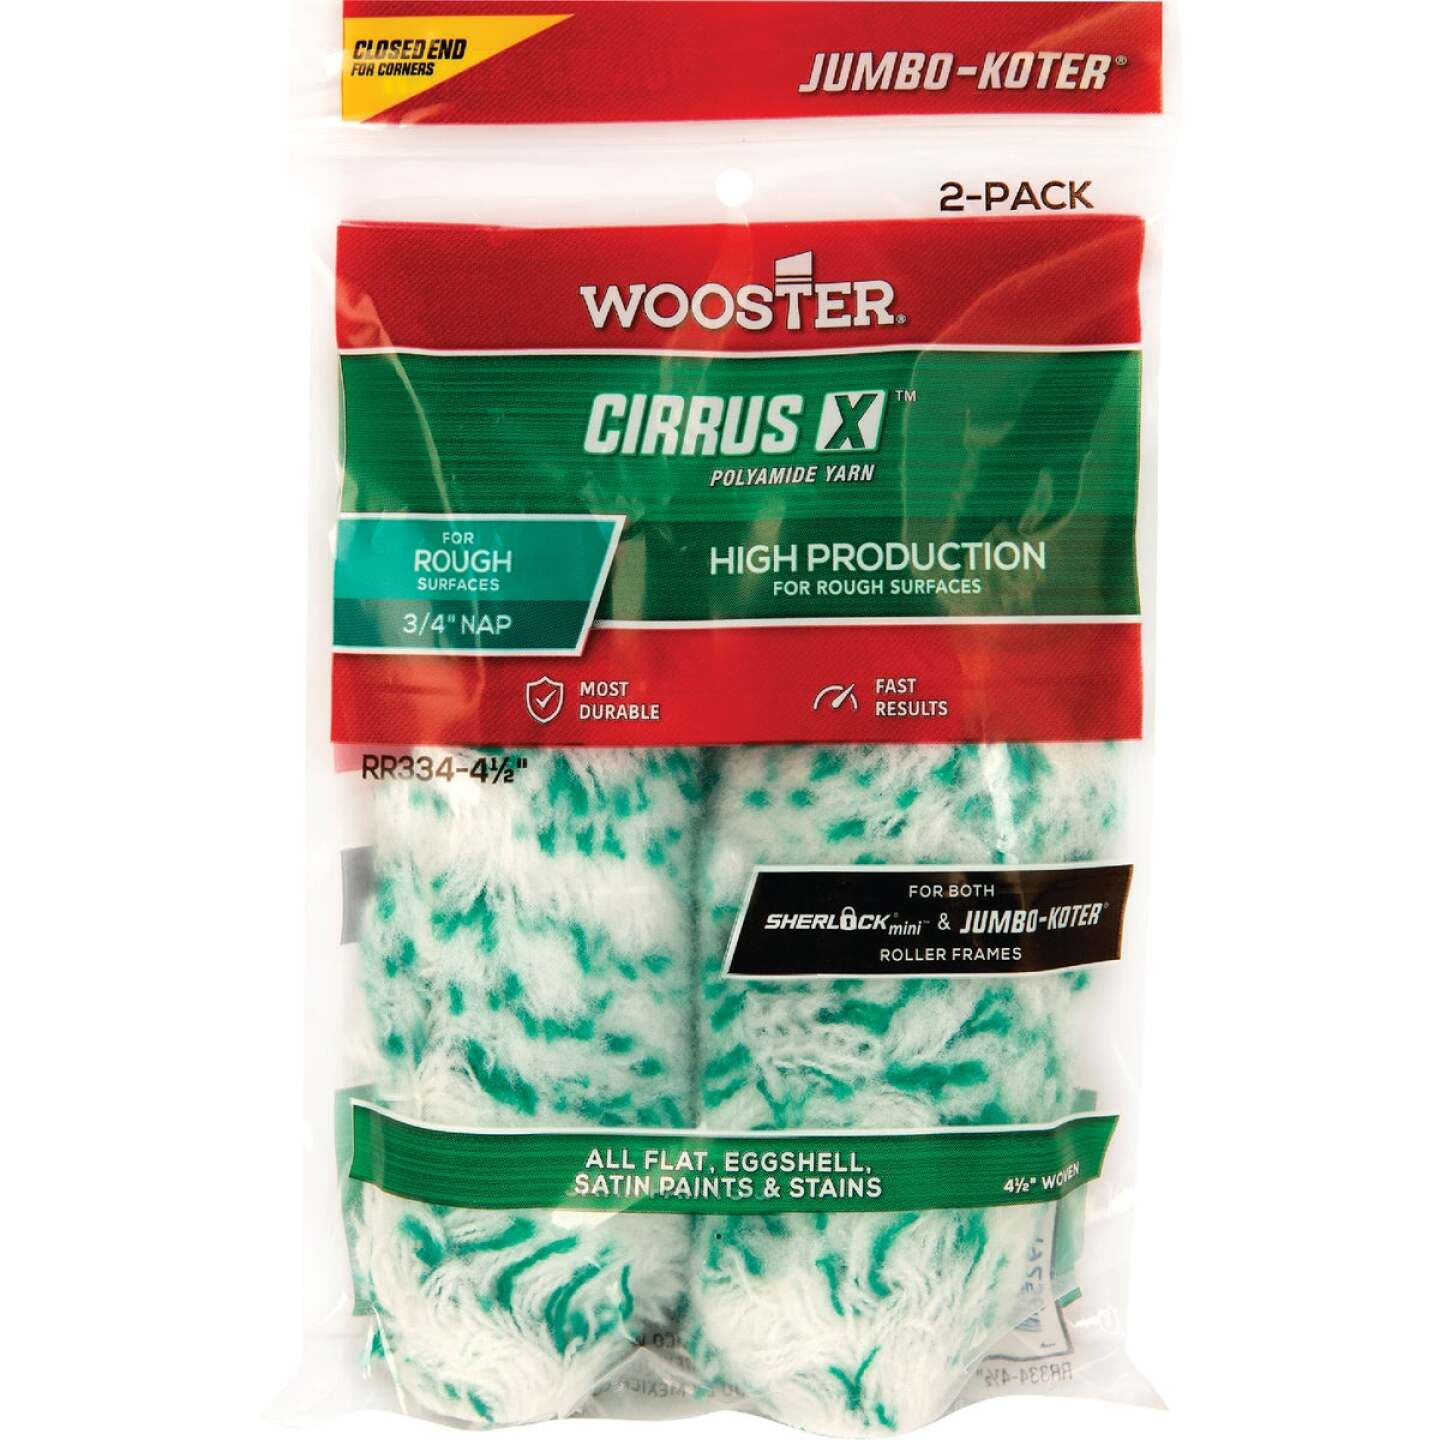 Wooster Jumbo-Koter Cirrus X 4-1/2 In. x 3/4 In. Yarn Paint Roller Cover (2 Pack) Image 1